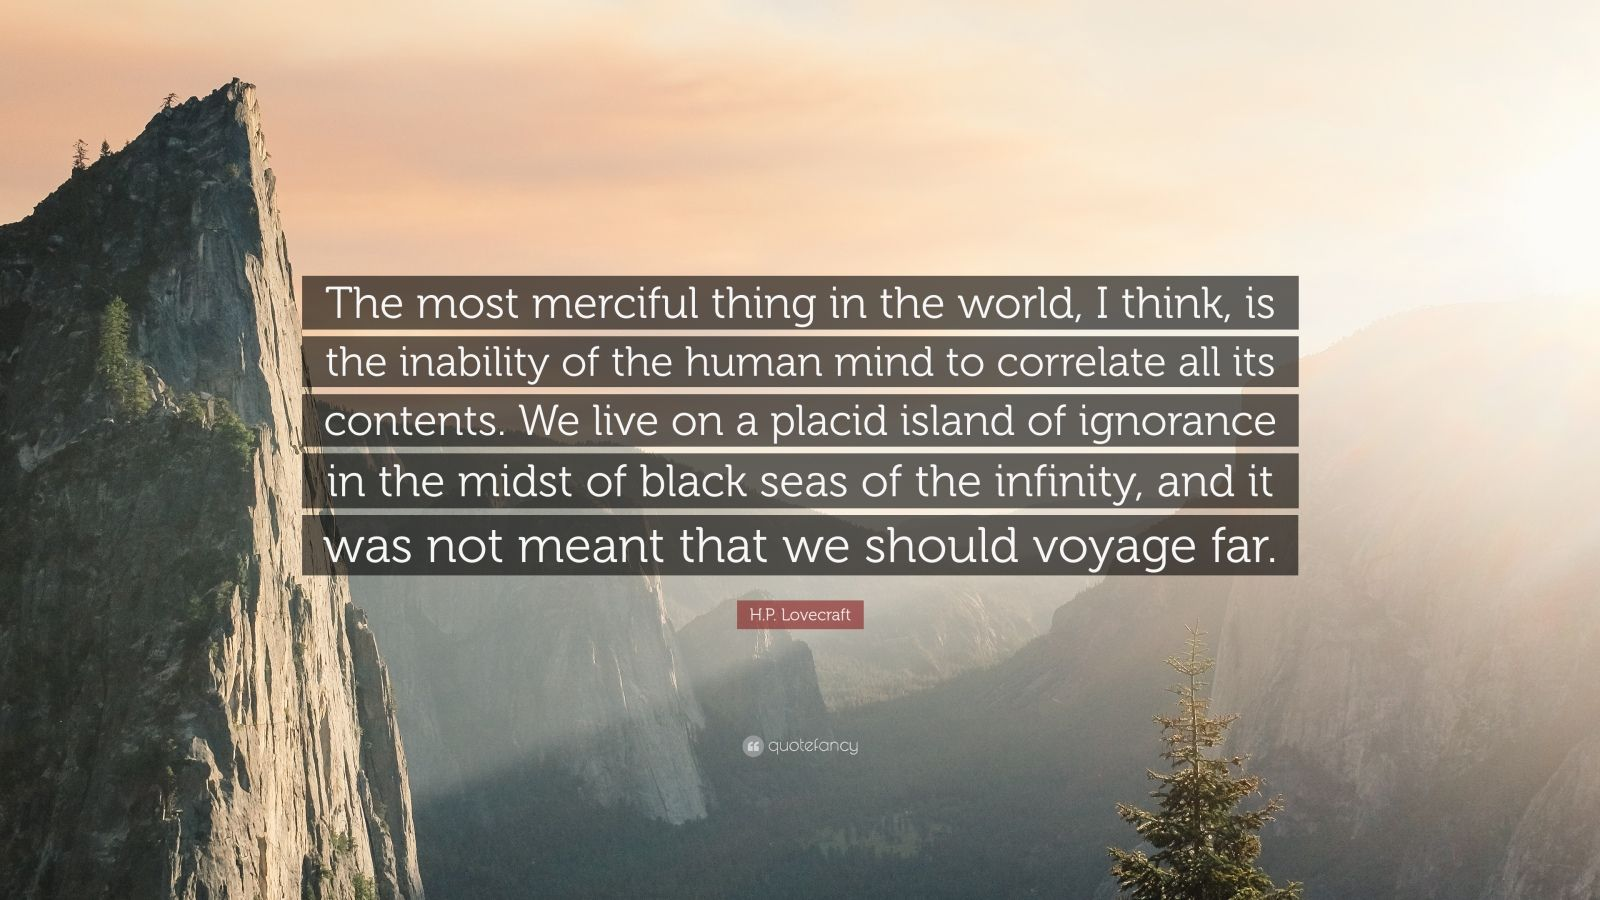 """H.P. Lovecraft Quote: """"The most merciful thing in the world, I think, is the inability of the human mind to correlate all its contents. We live on a placid island of ignorance in the midst of black seas of the infinity, and it was not meant that we should voyage far."""""""